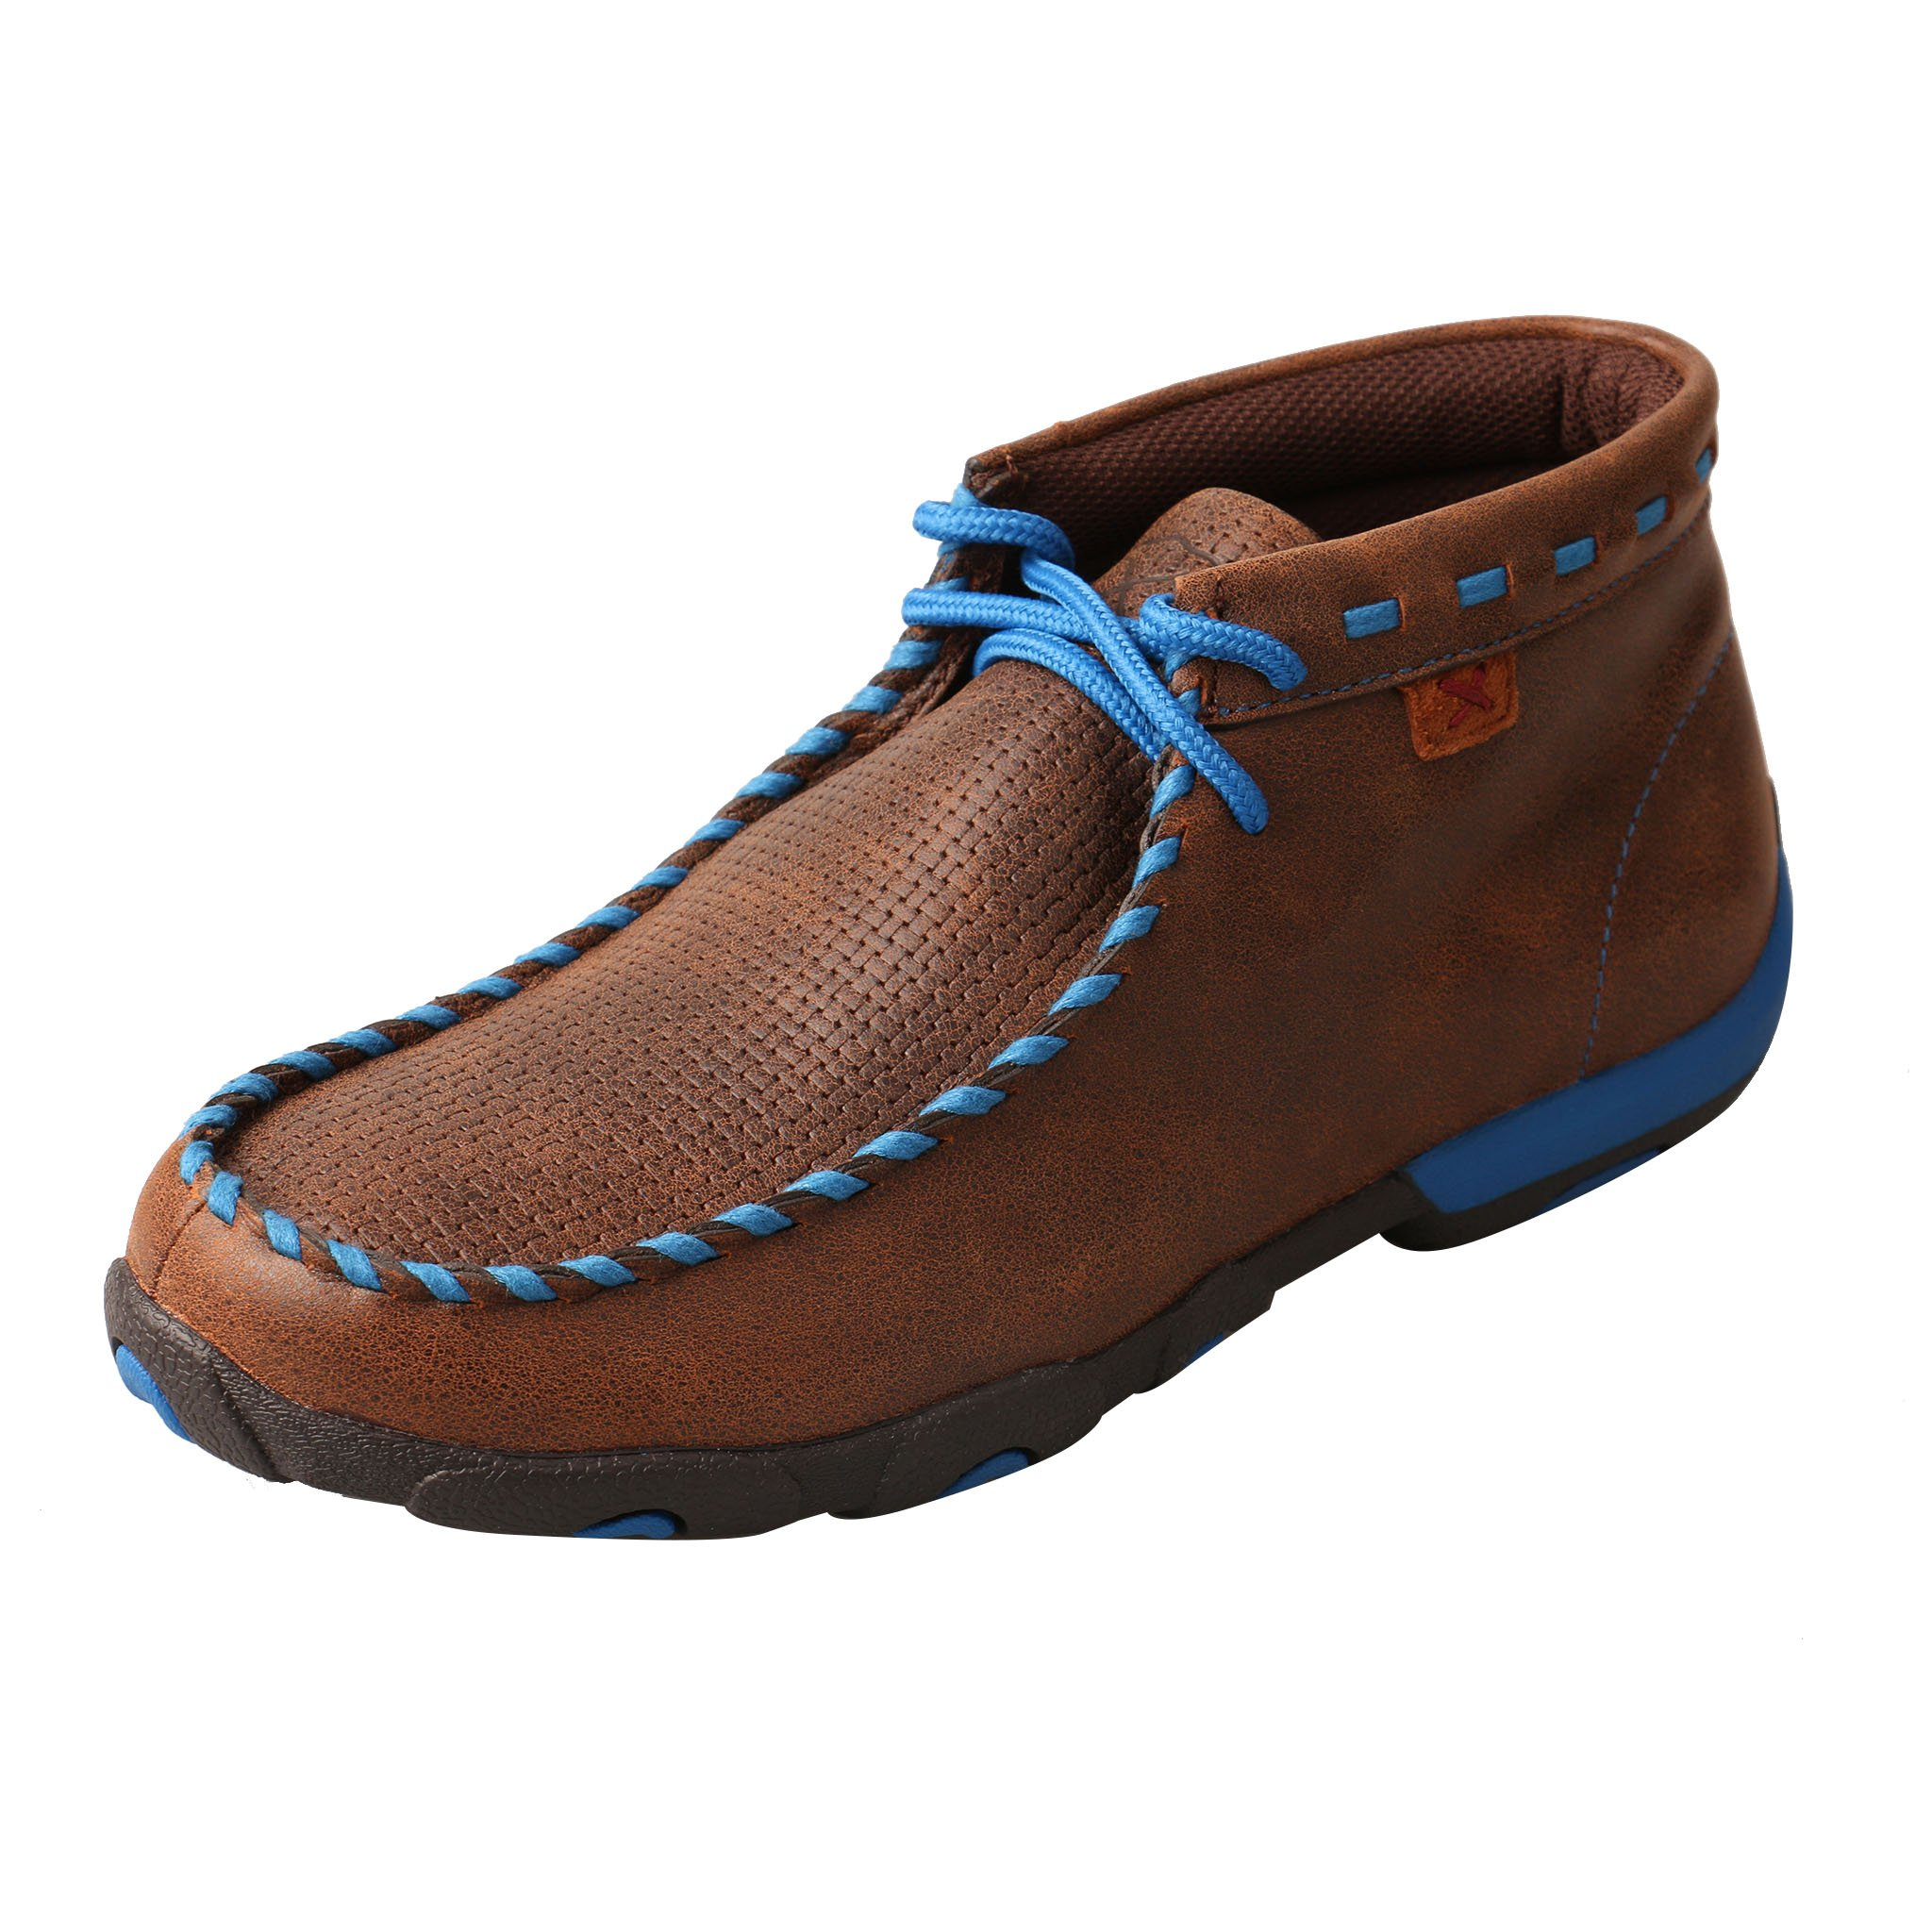 Twisted X Women's with Blue Lacing Driving Moccasins Brown 11 M